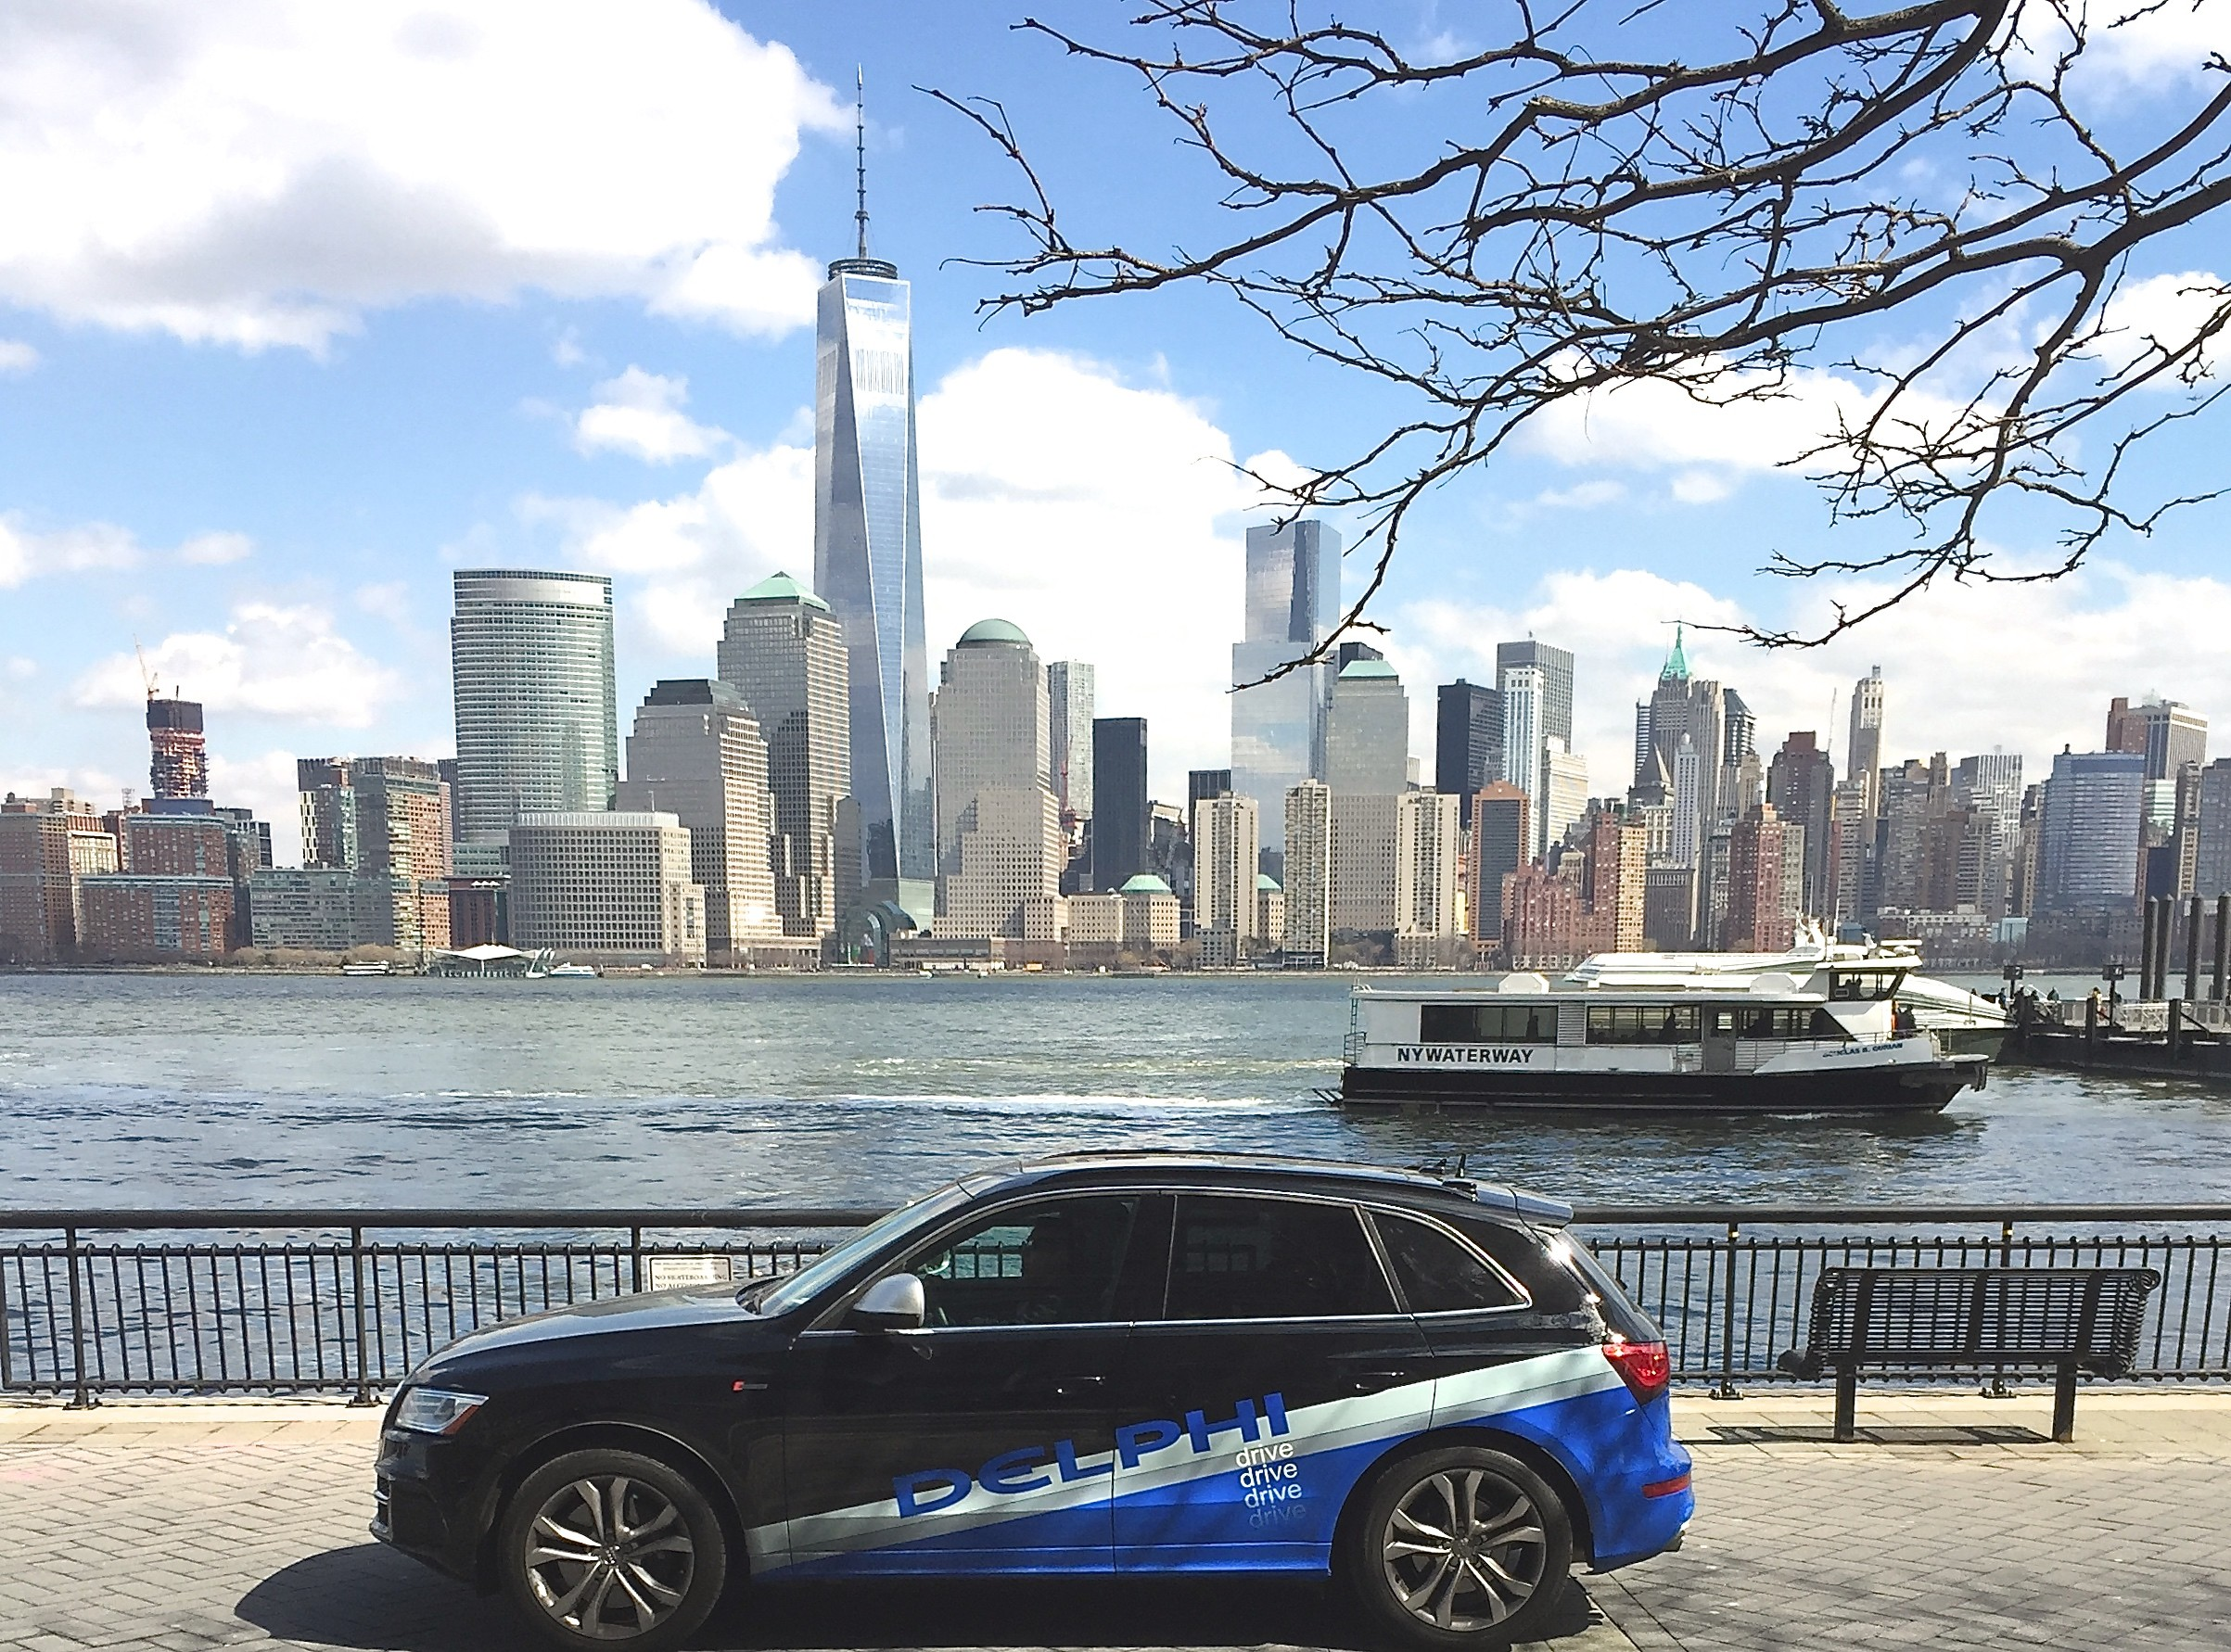 2406x1782 autonomous-driving-car-in-front-of-nyc-skyline-